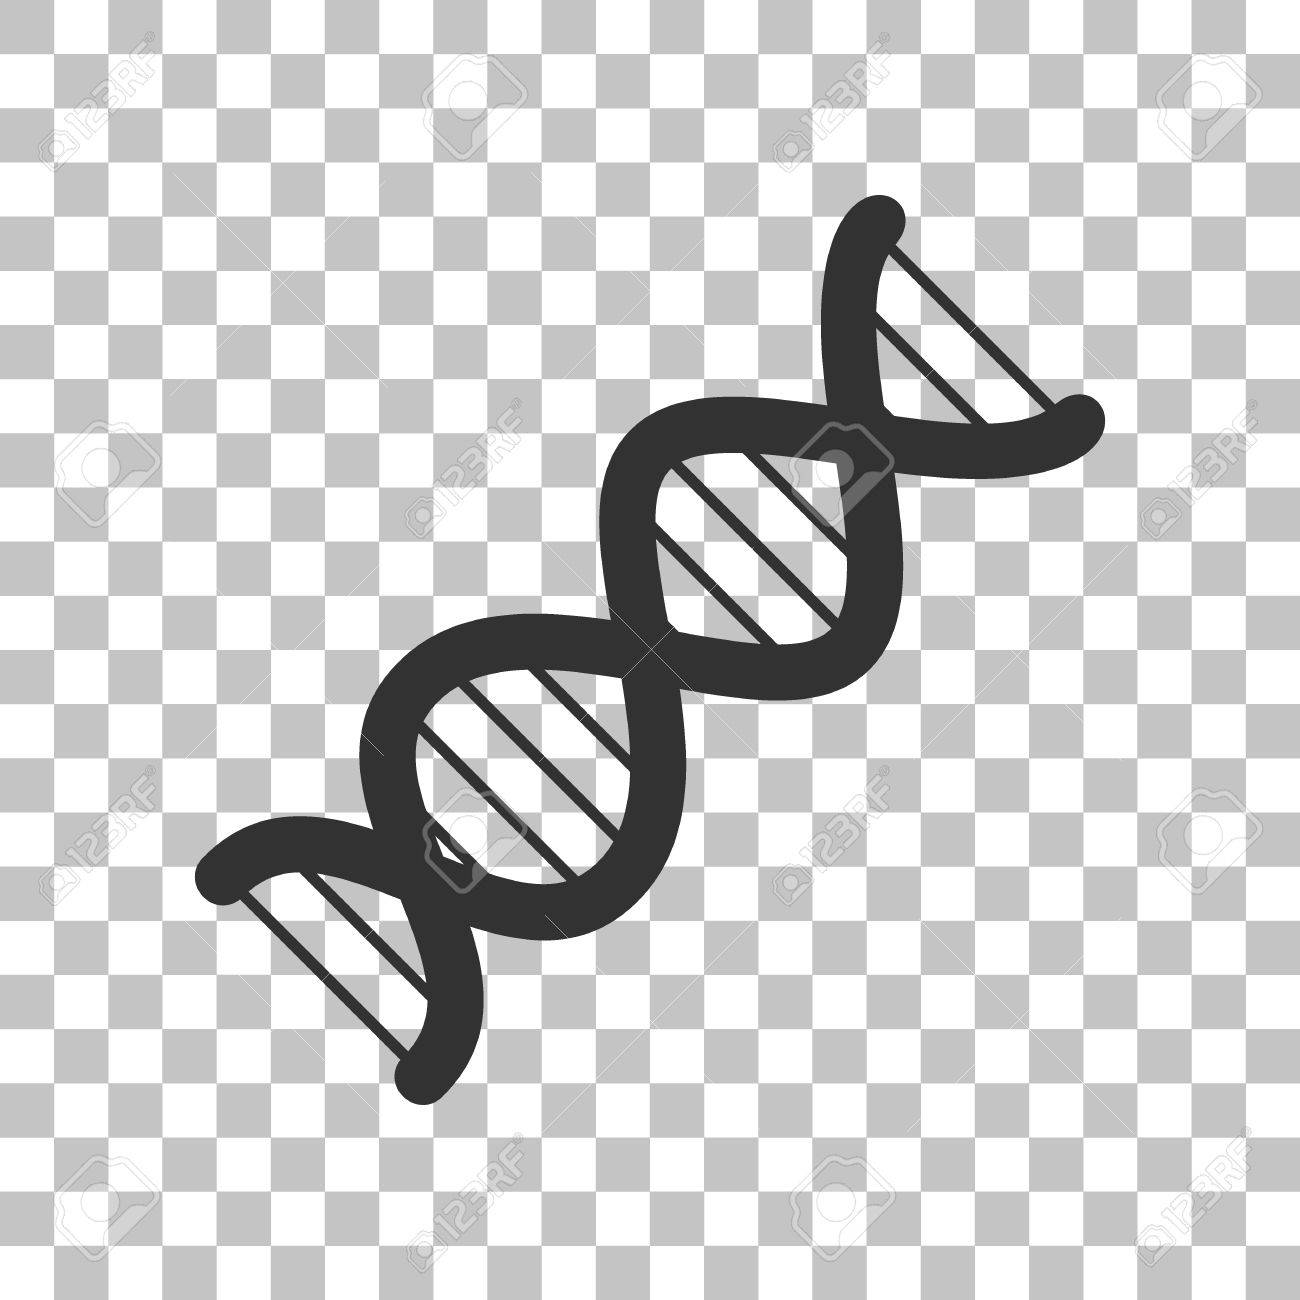 the dna sign. dark gray icon on transparent background. royalty free